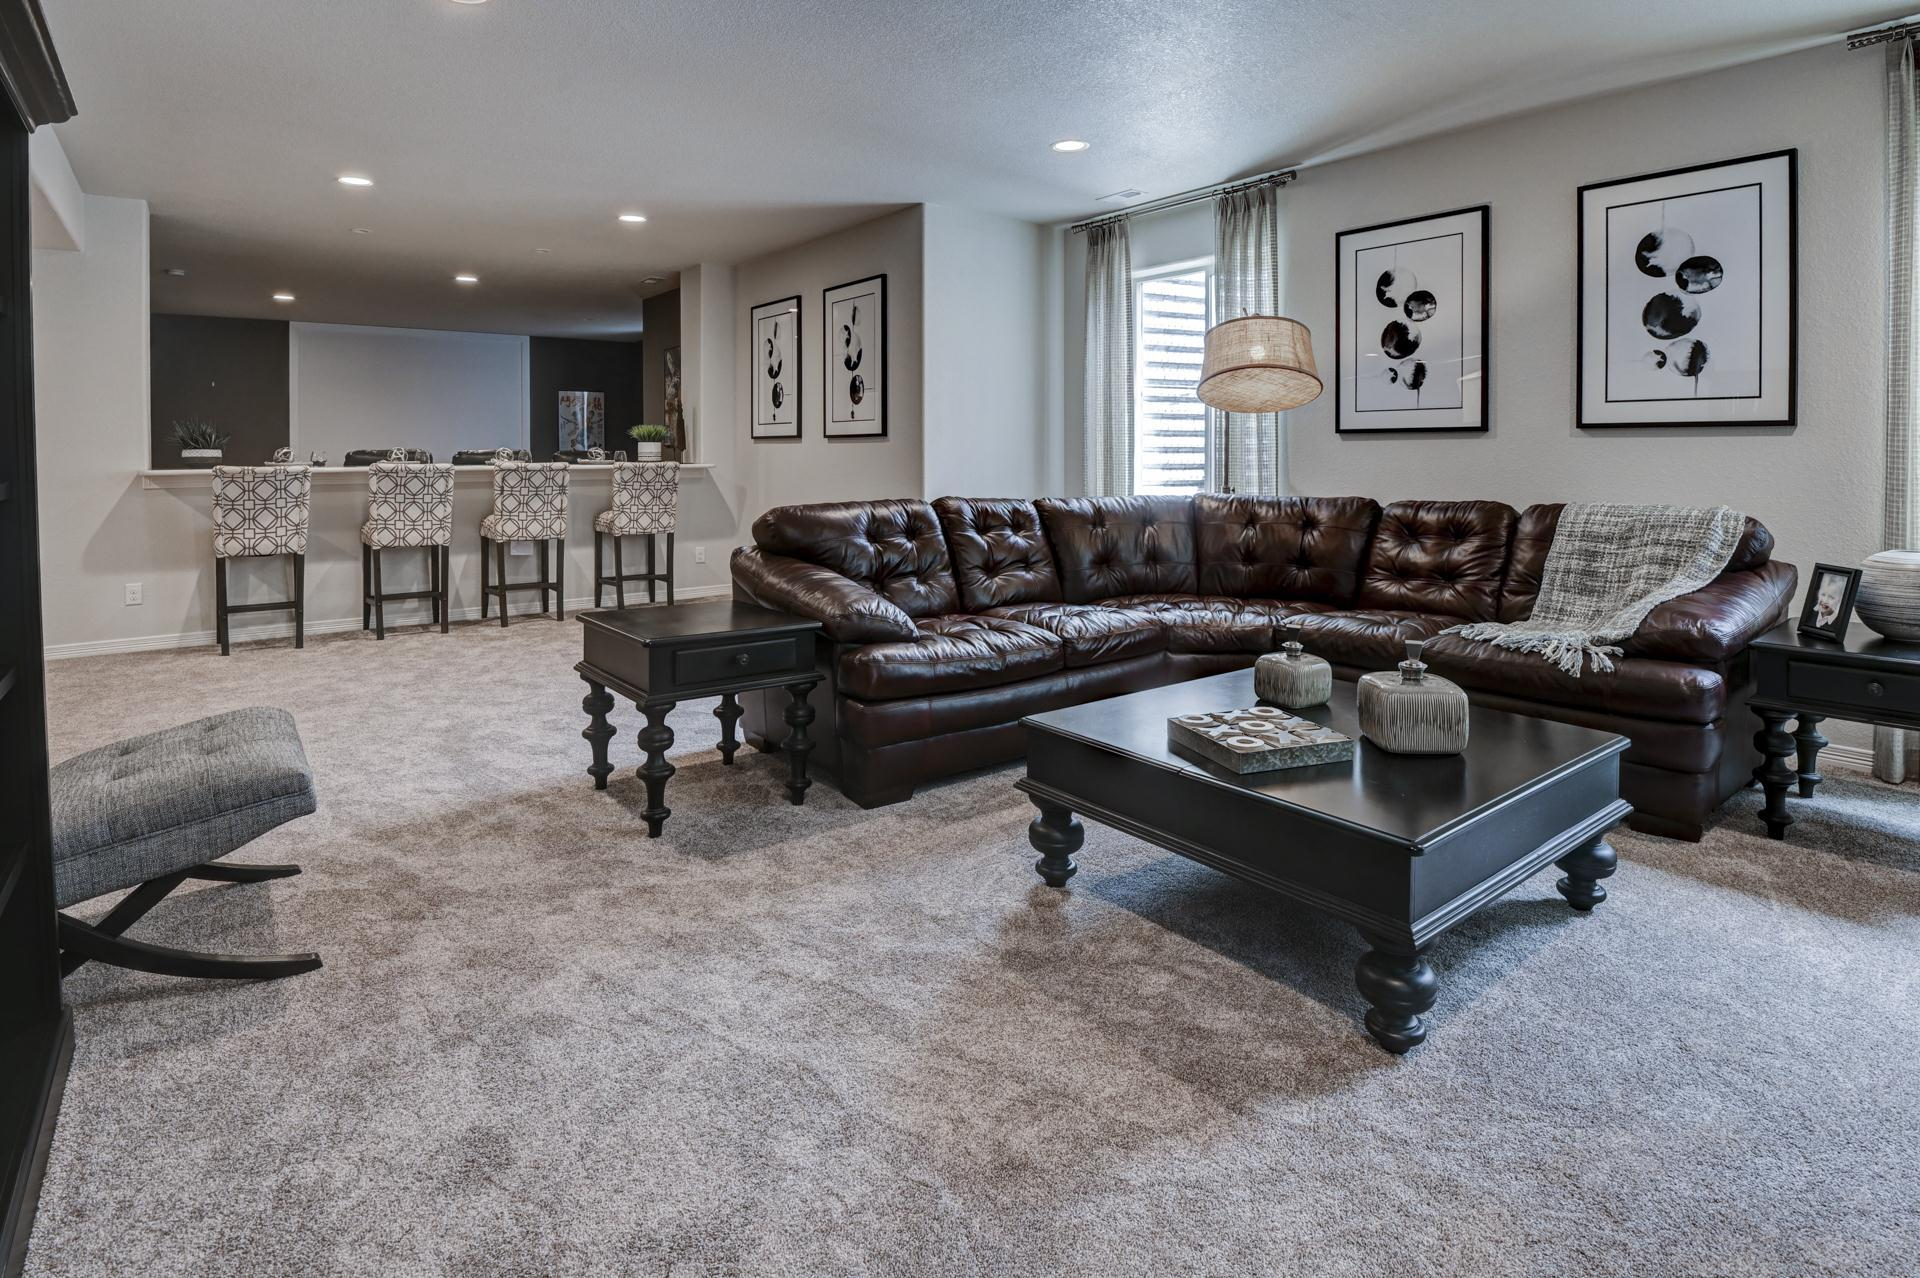 Living Area featured in the Sunlight Peak (Finished Basement) By Reunion Homes